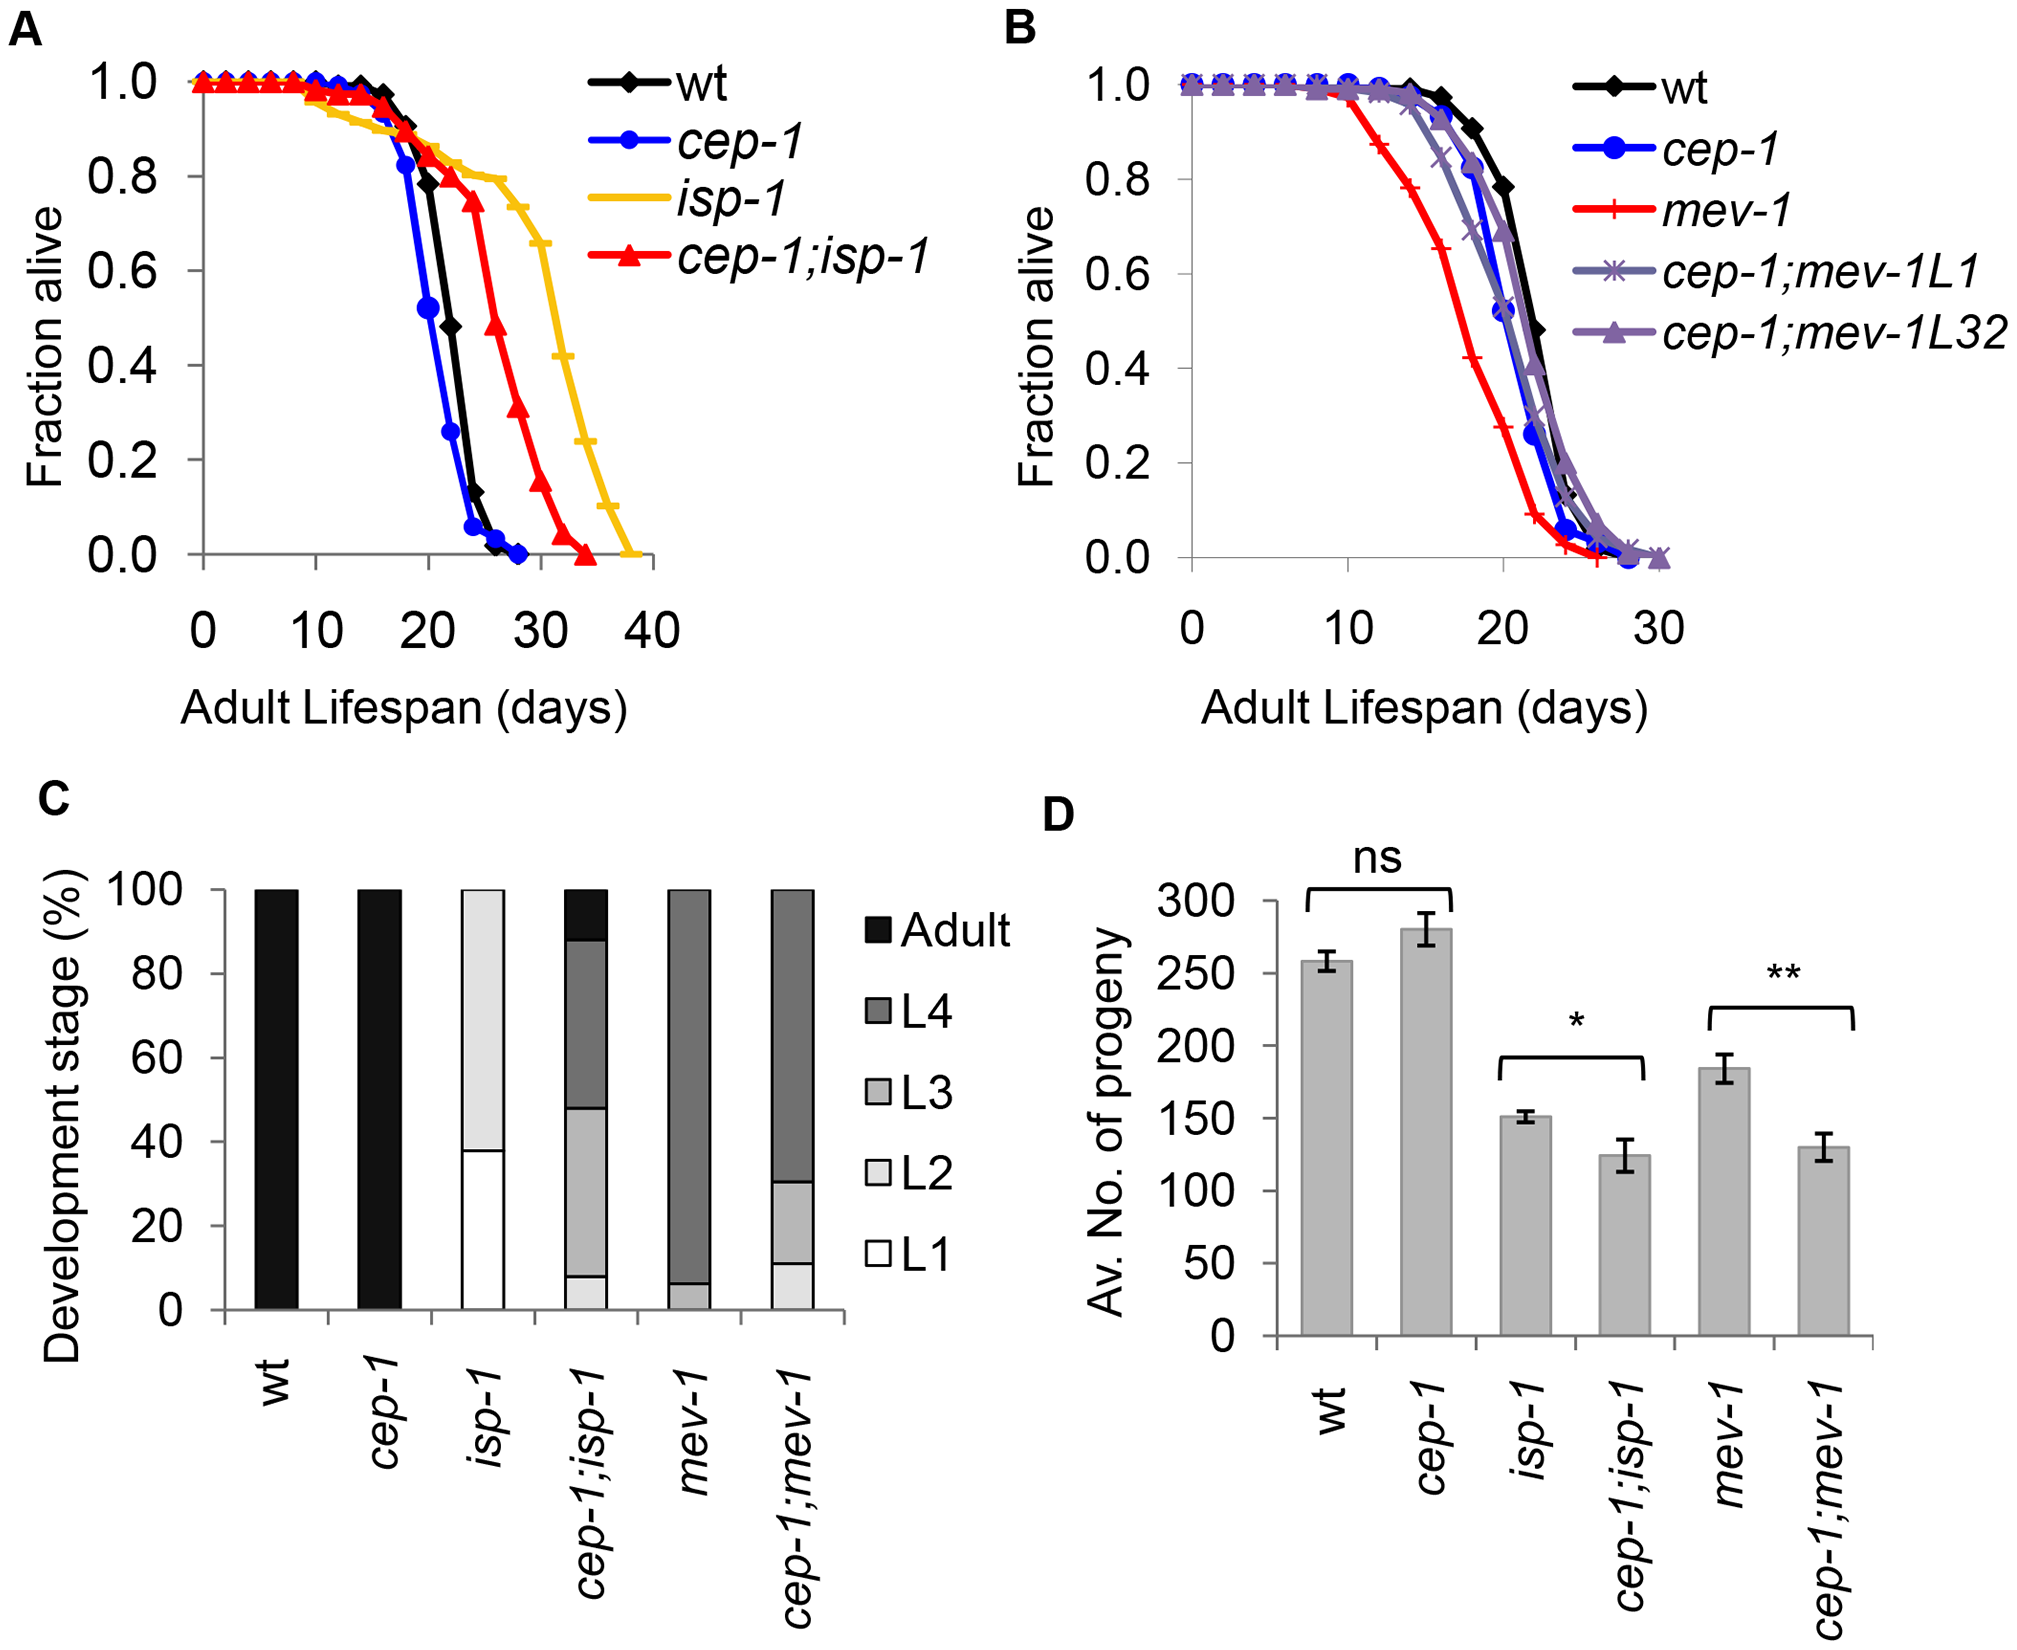 CEP-1 mediates the longevity and development of two mitochondrial mutants in <i>C. elegans</i>.